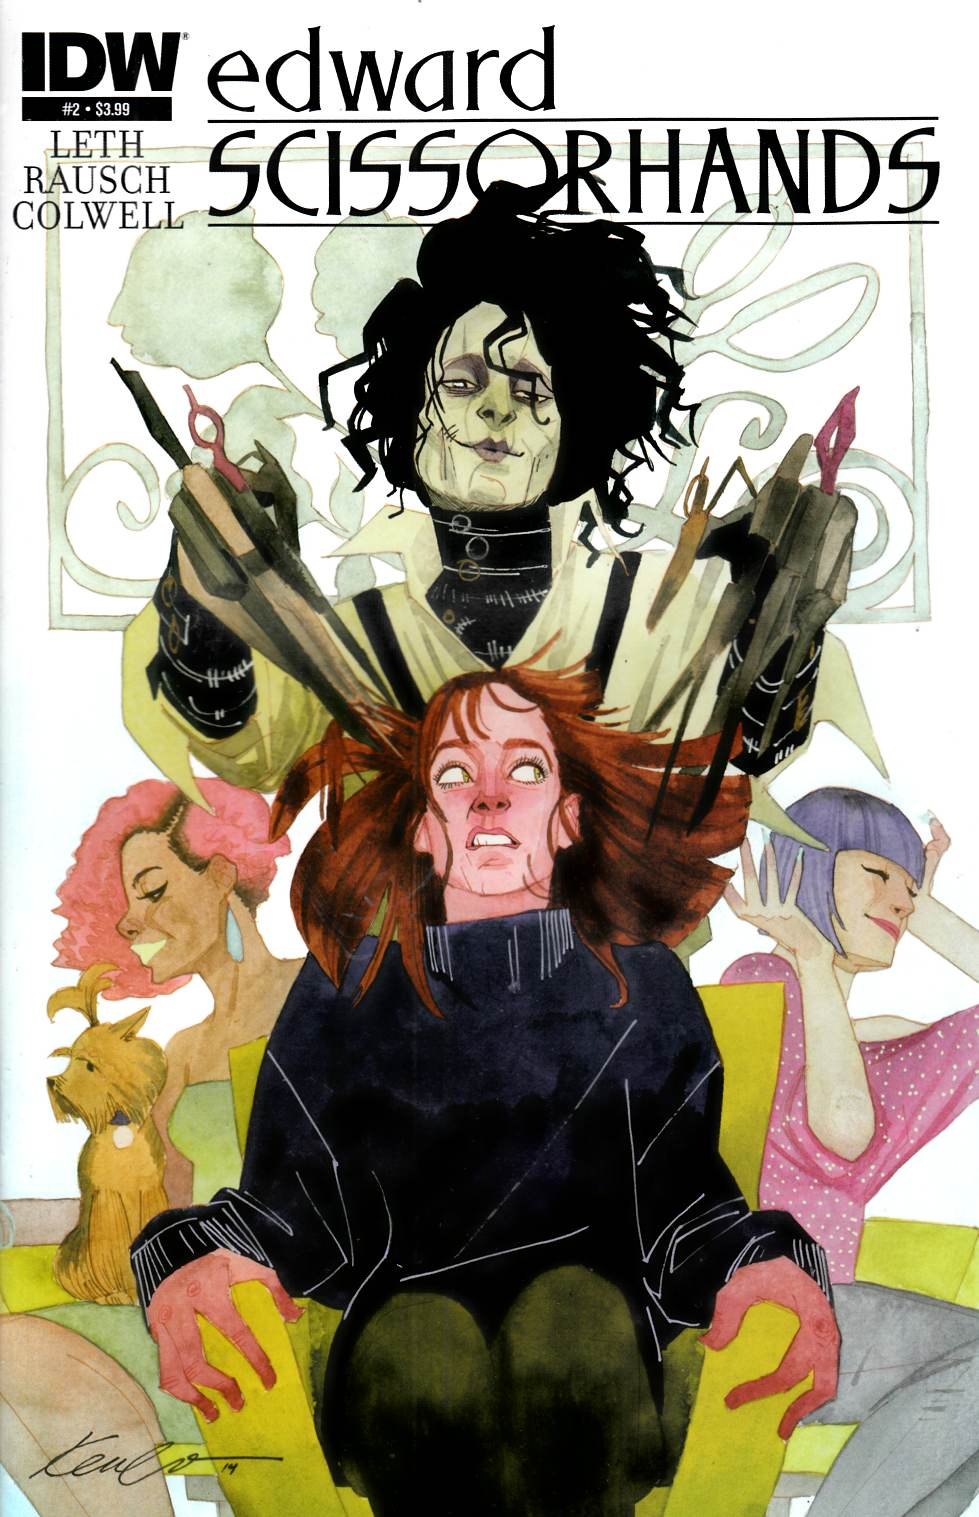 Edward Scissorhands #2 [IDW Comic]